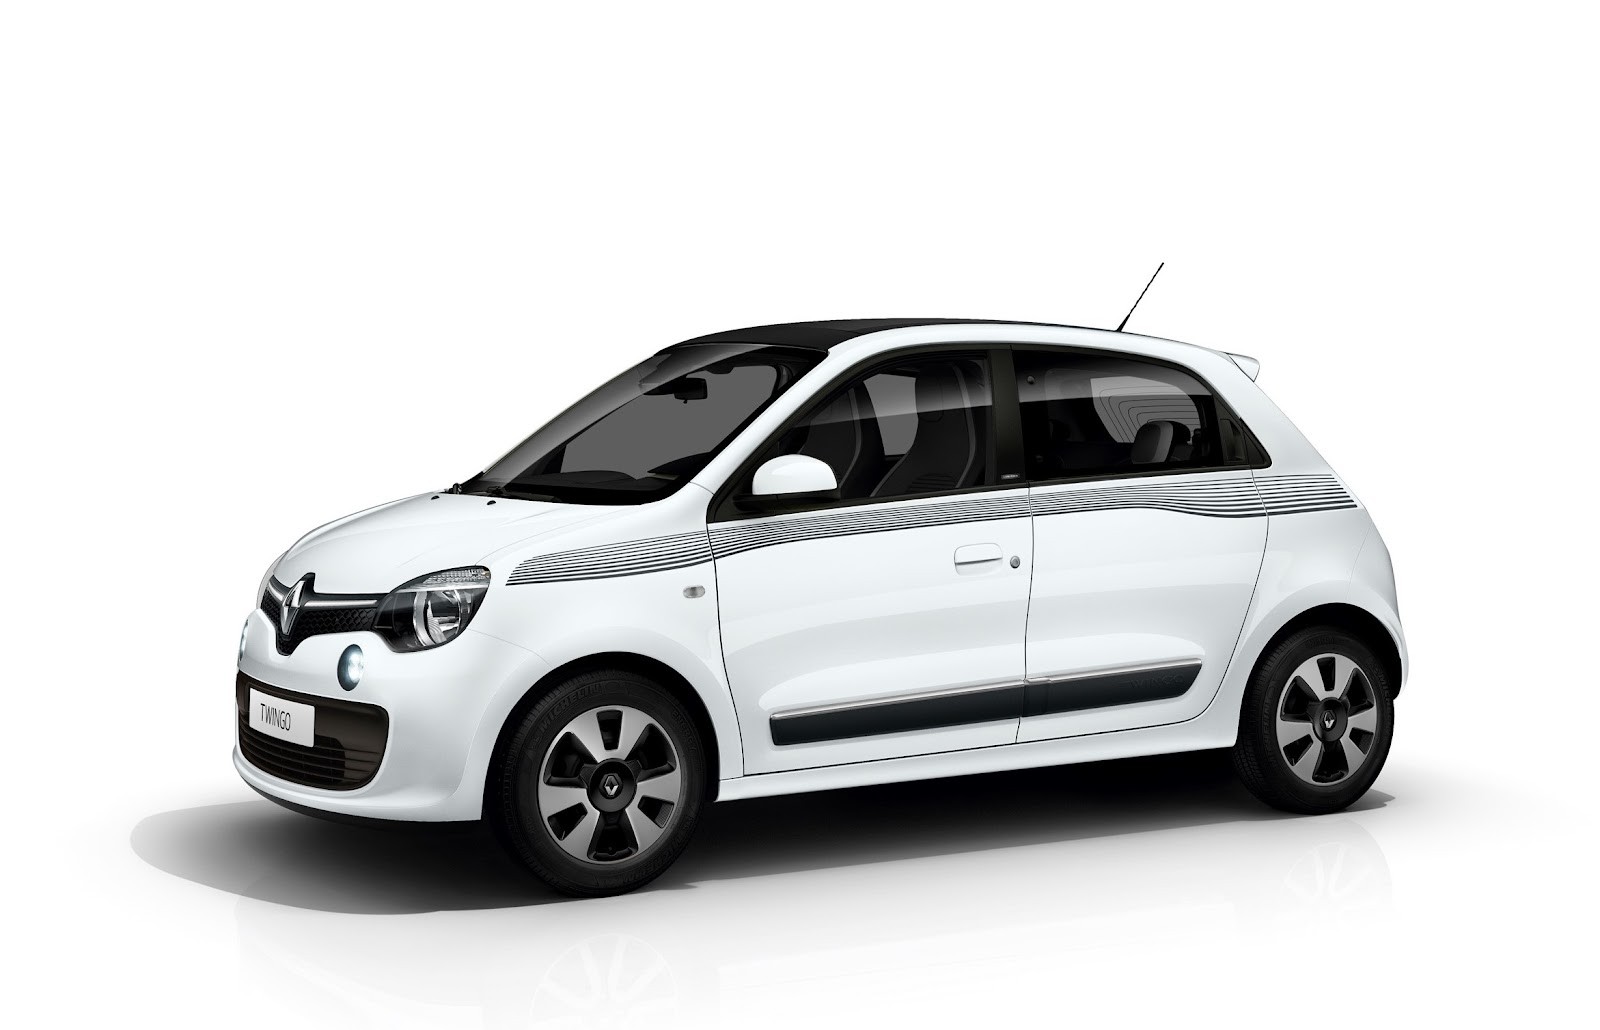 la gazette automobile renault twingo 3 limited s rie limit e 2015. Black Bedroom Furniture Sets. Home Design Ideas